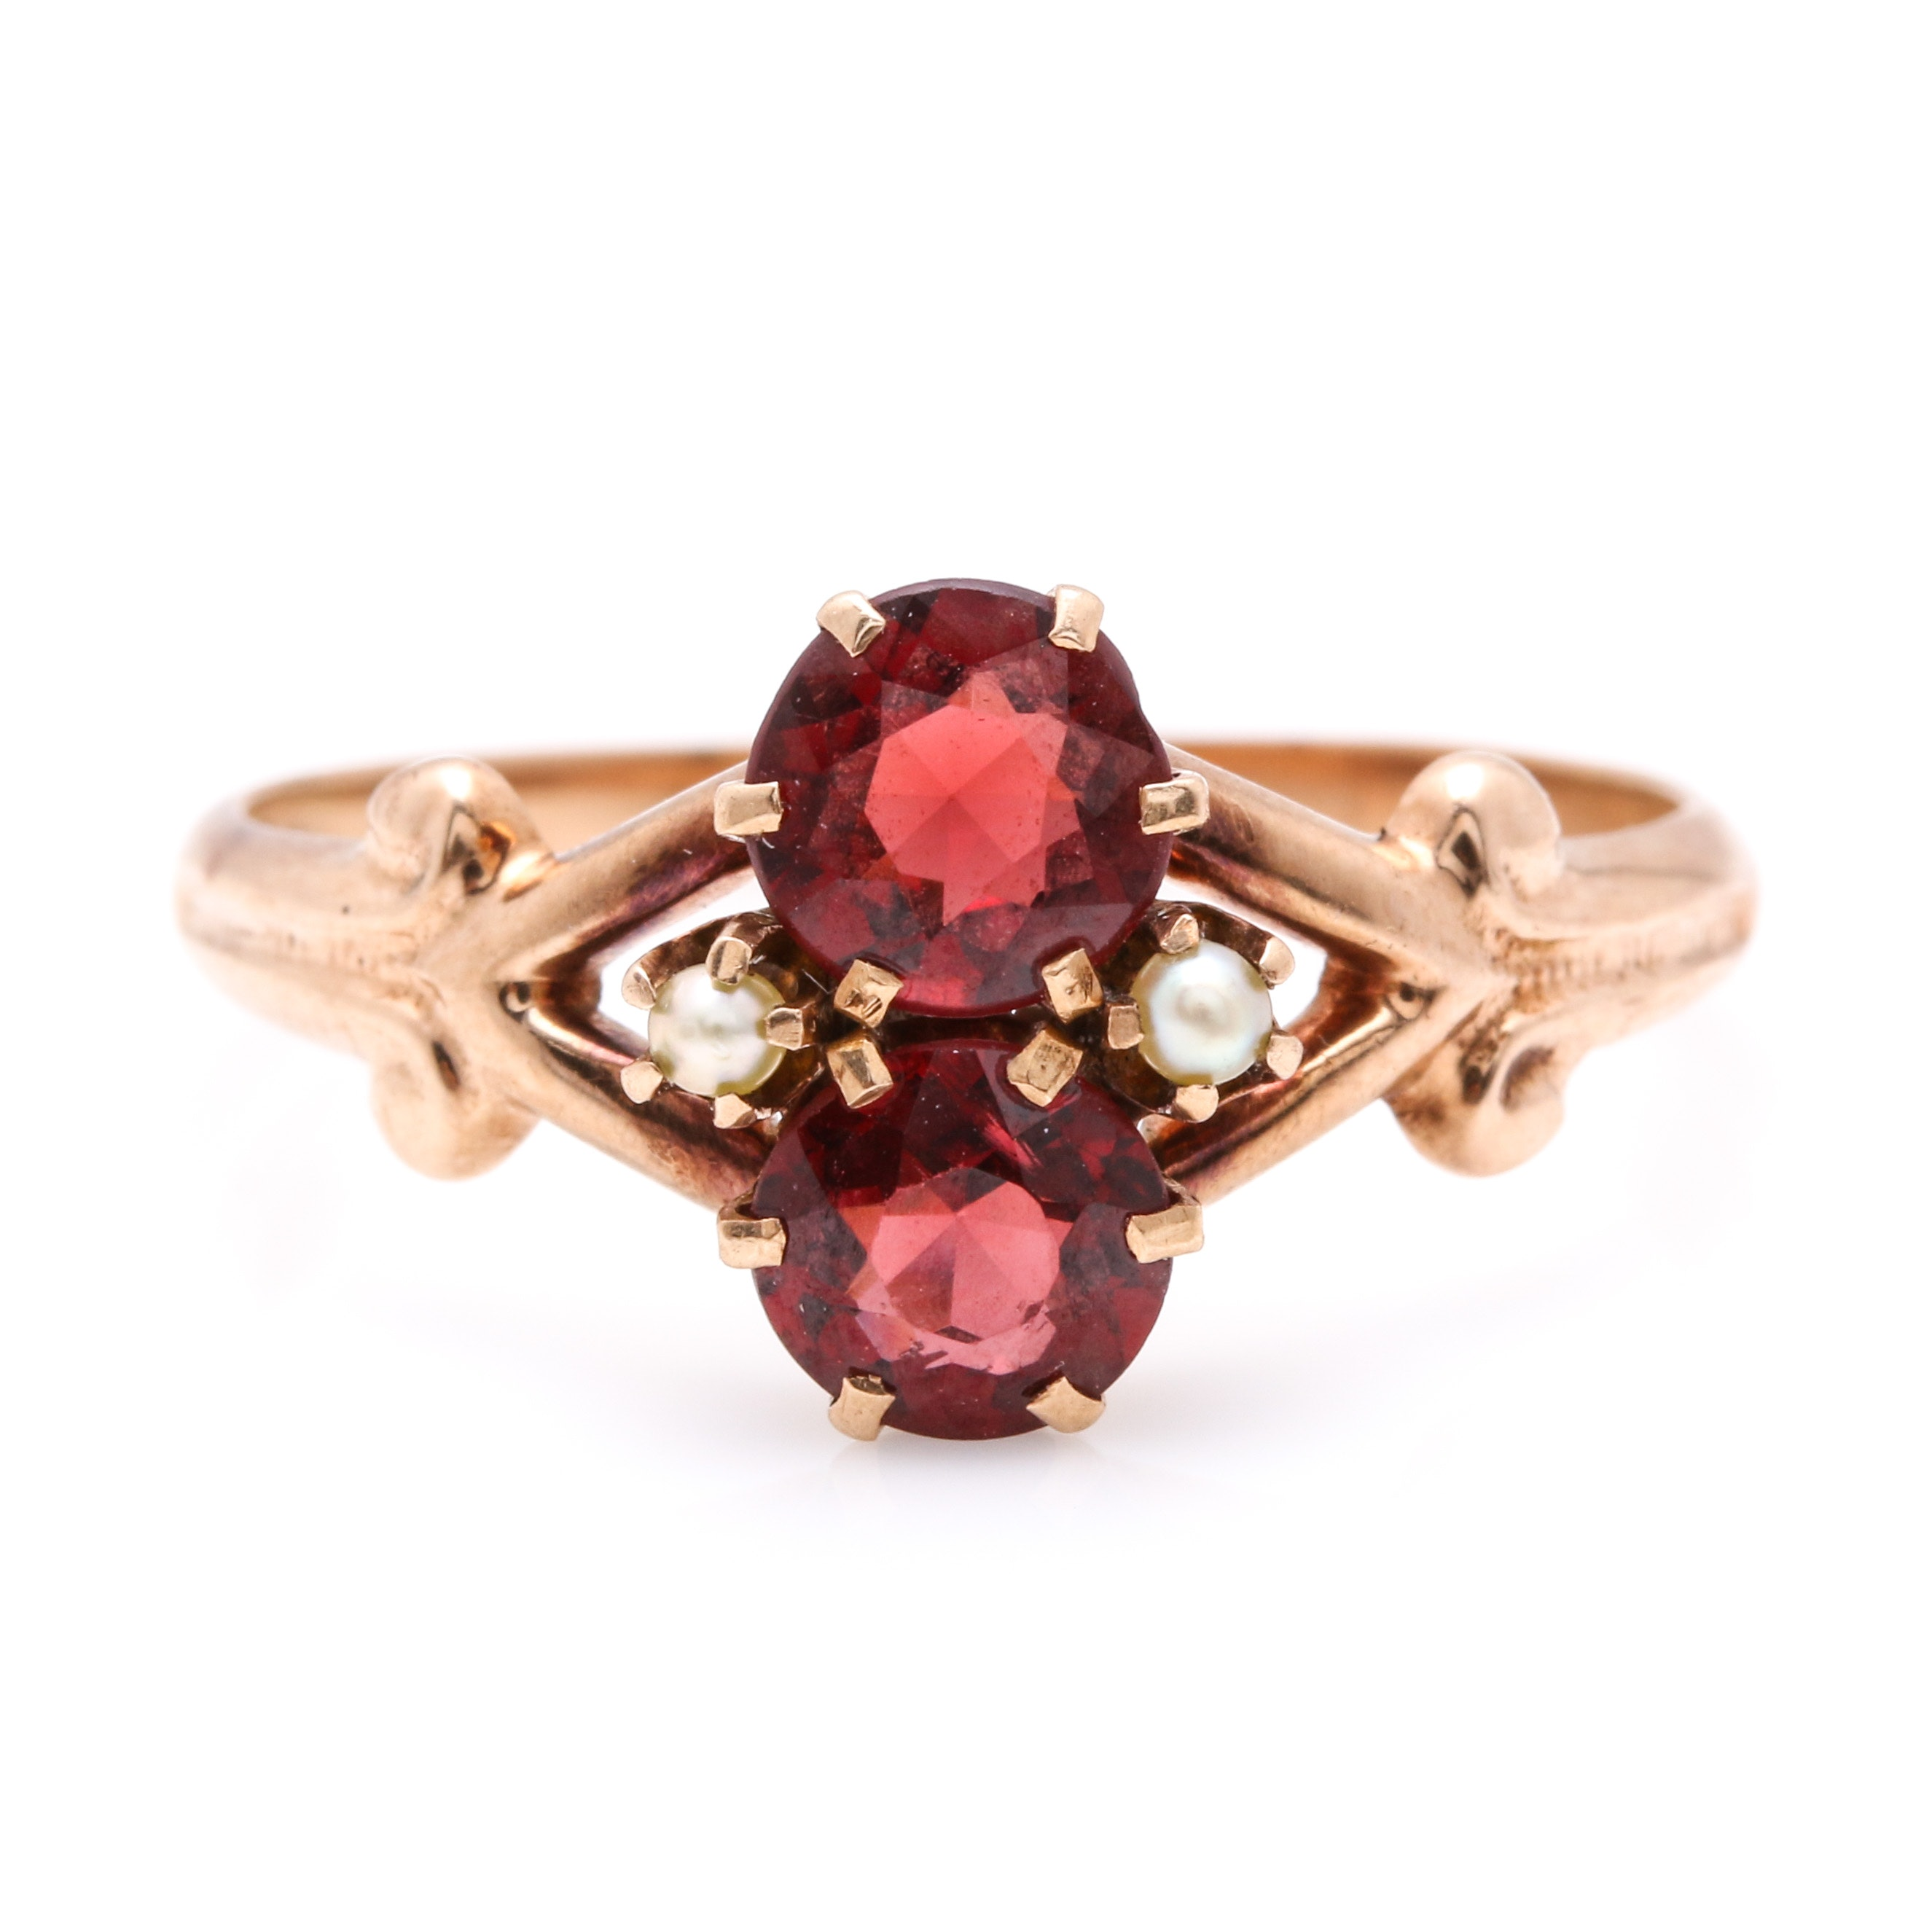 Vintage 10K Yellow Gold Garnet and Cultured Seed Pearl Ring